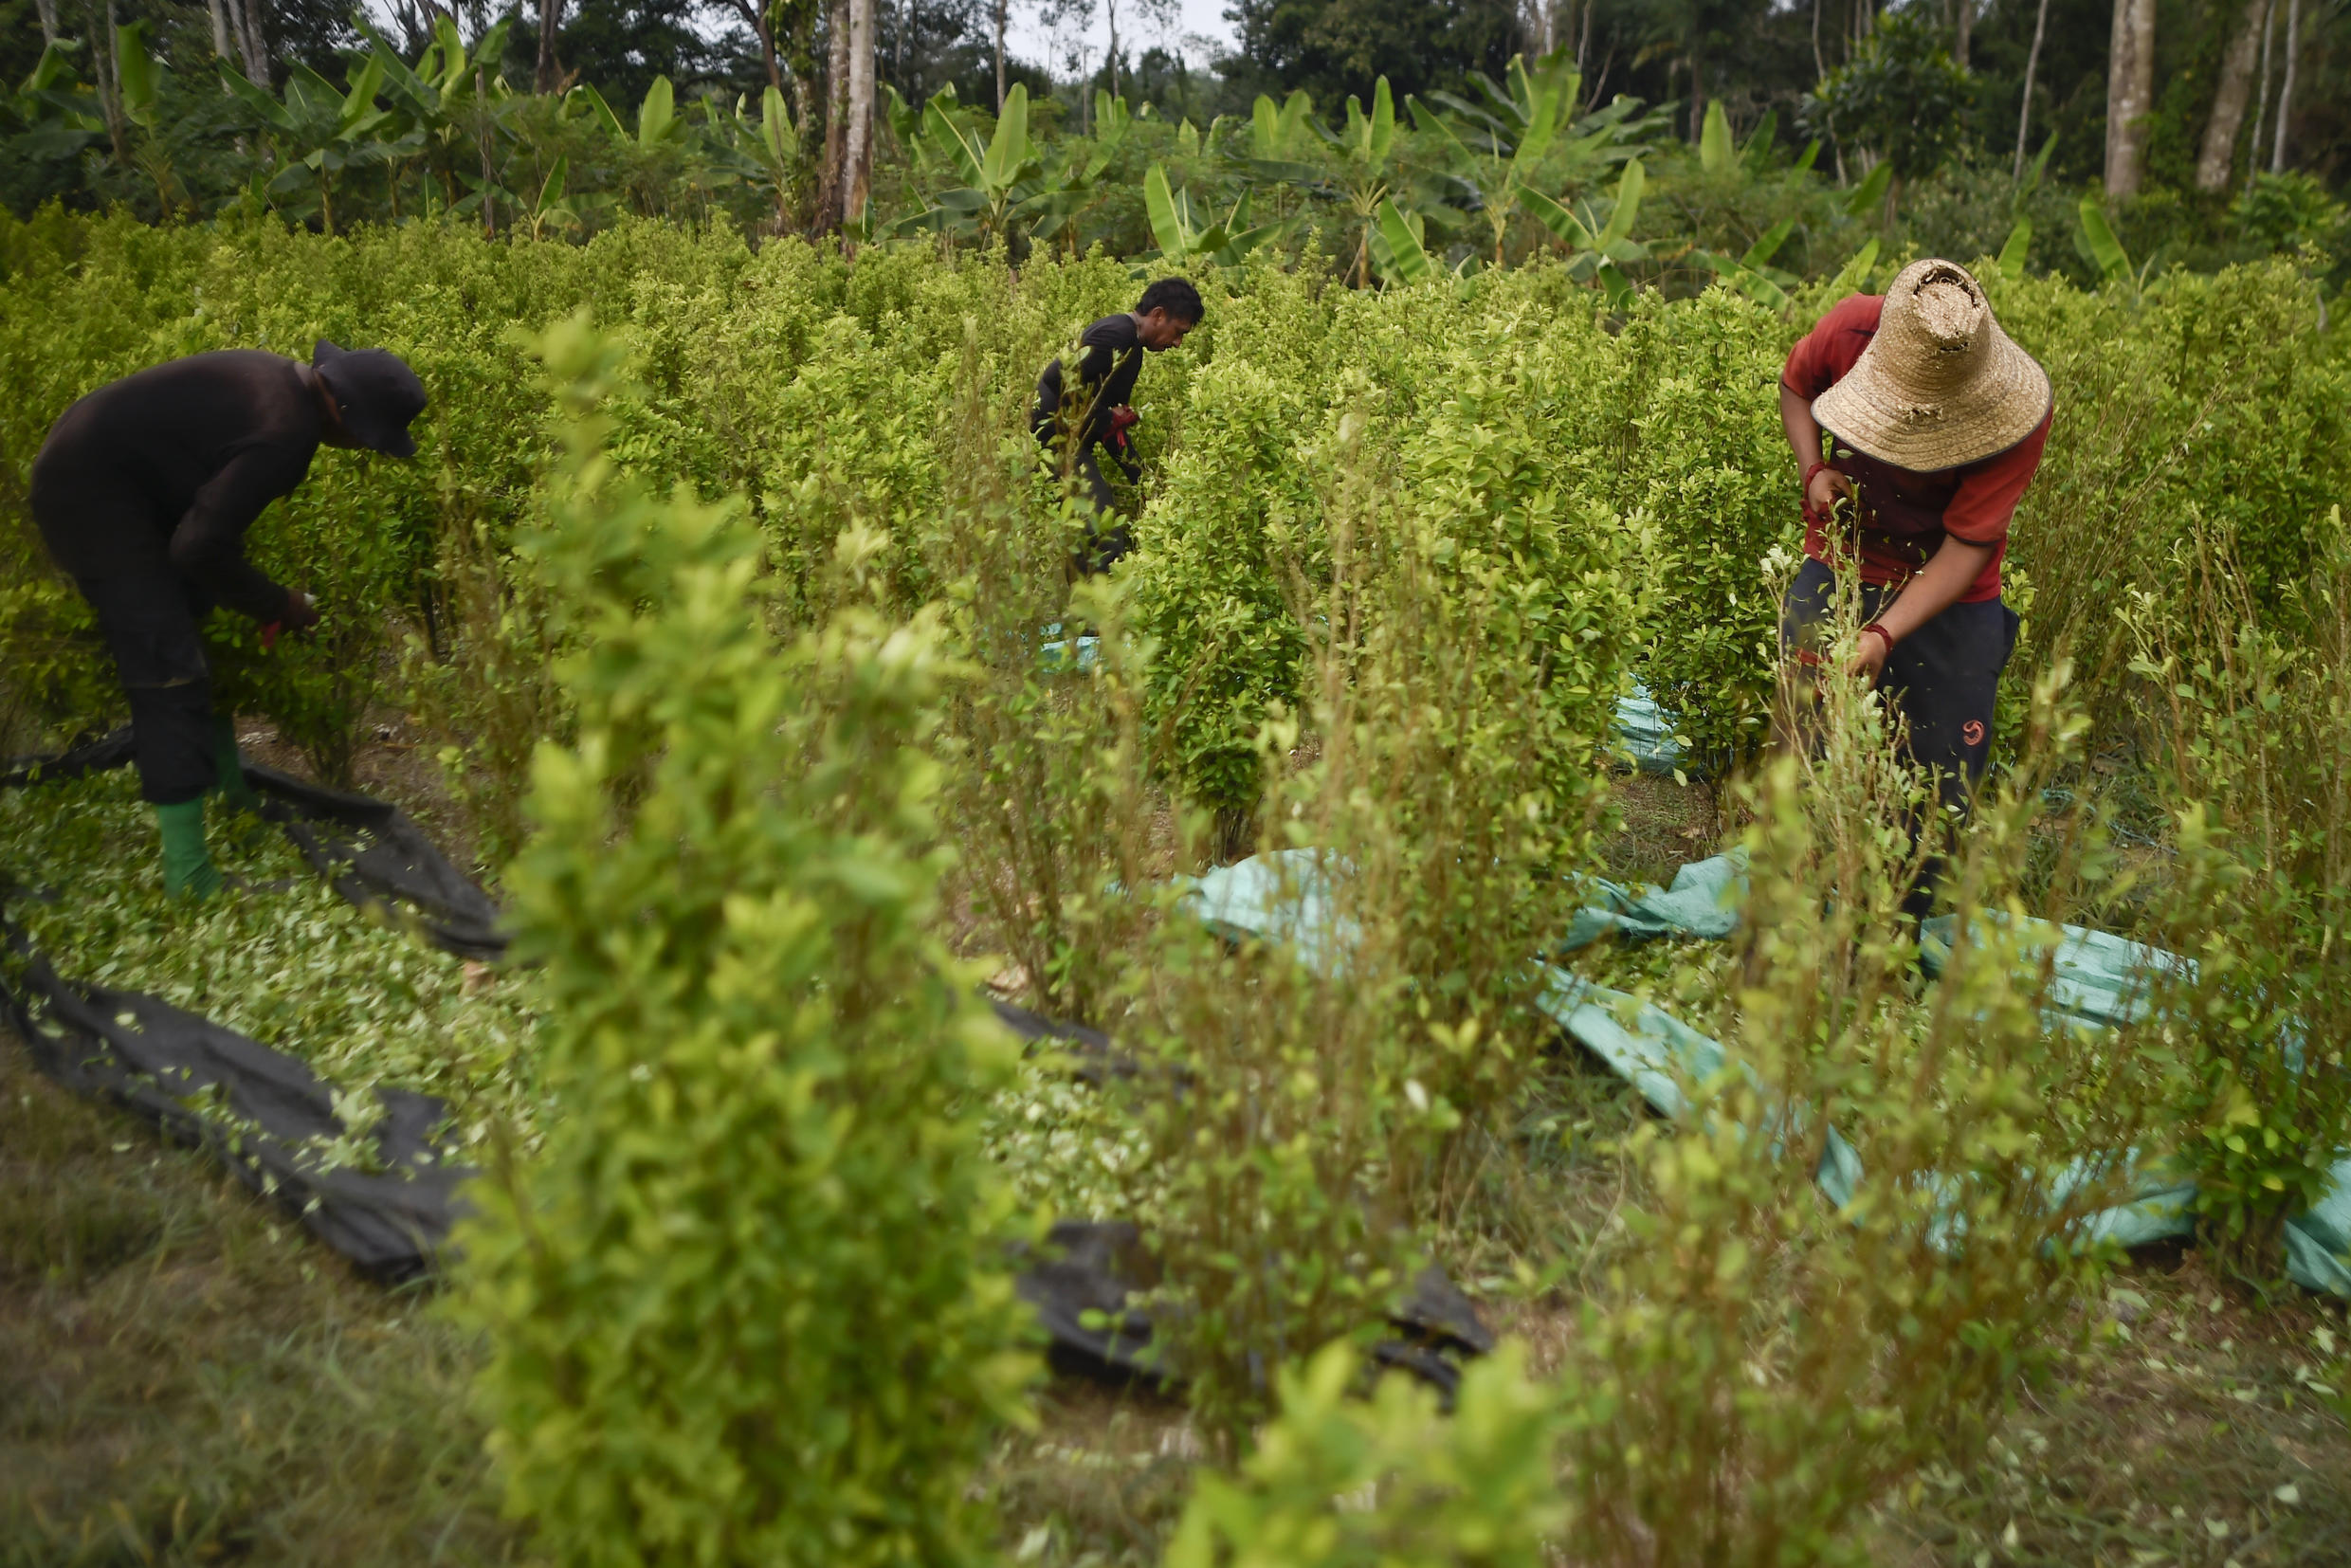 """File photo taken on February 8, 2019 shows a """"Scrapers"""" (farmers who collect coca leaves), working on a coca plantation in the Catatumbo region, Norte de Santander department, in Colombia."""